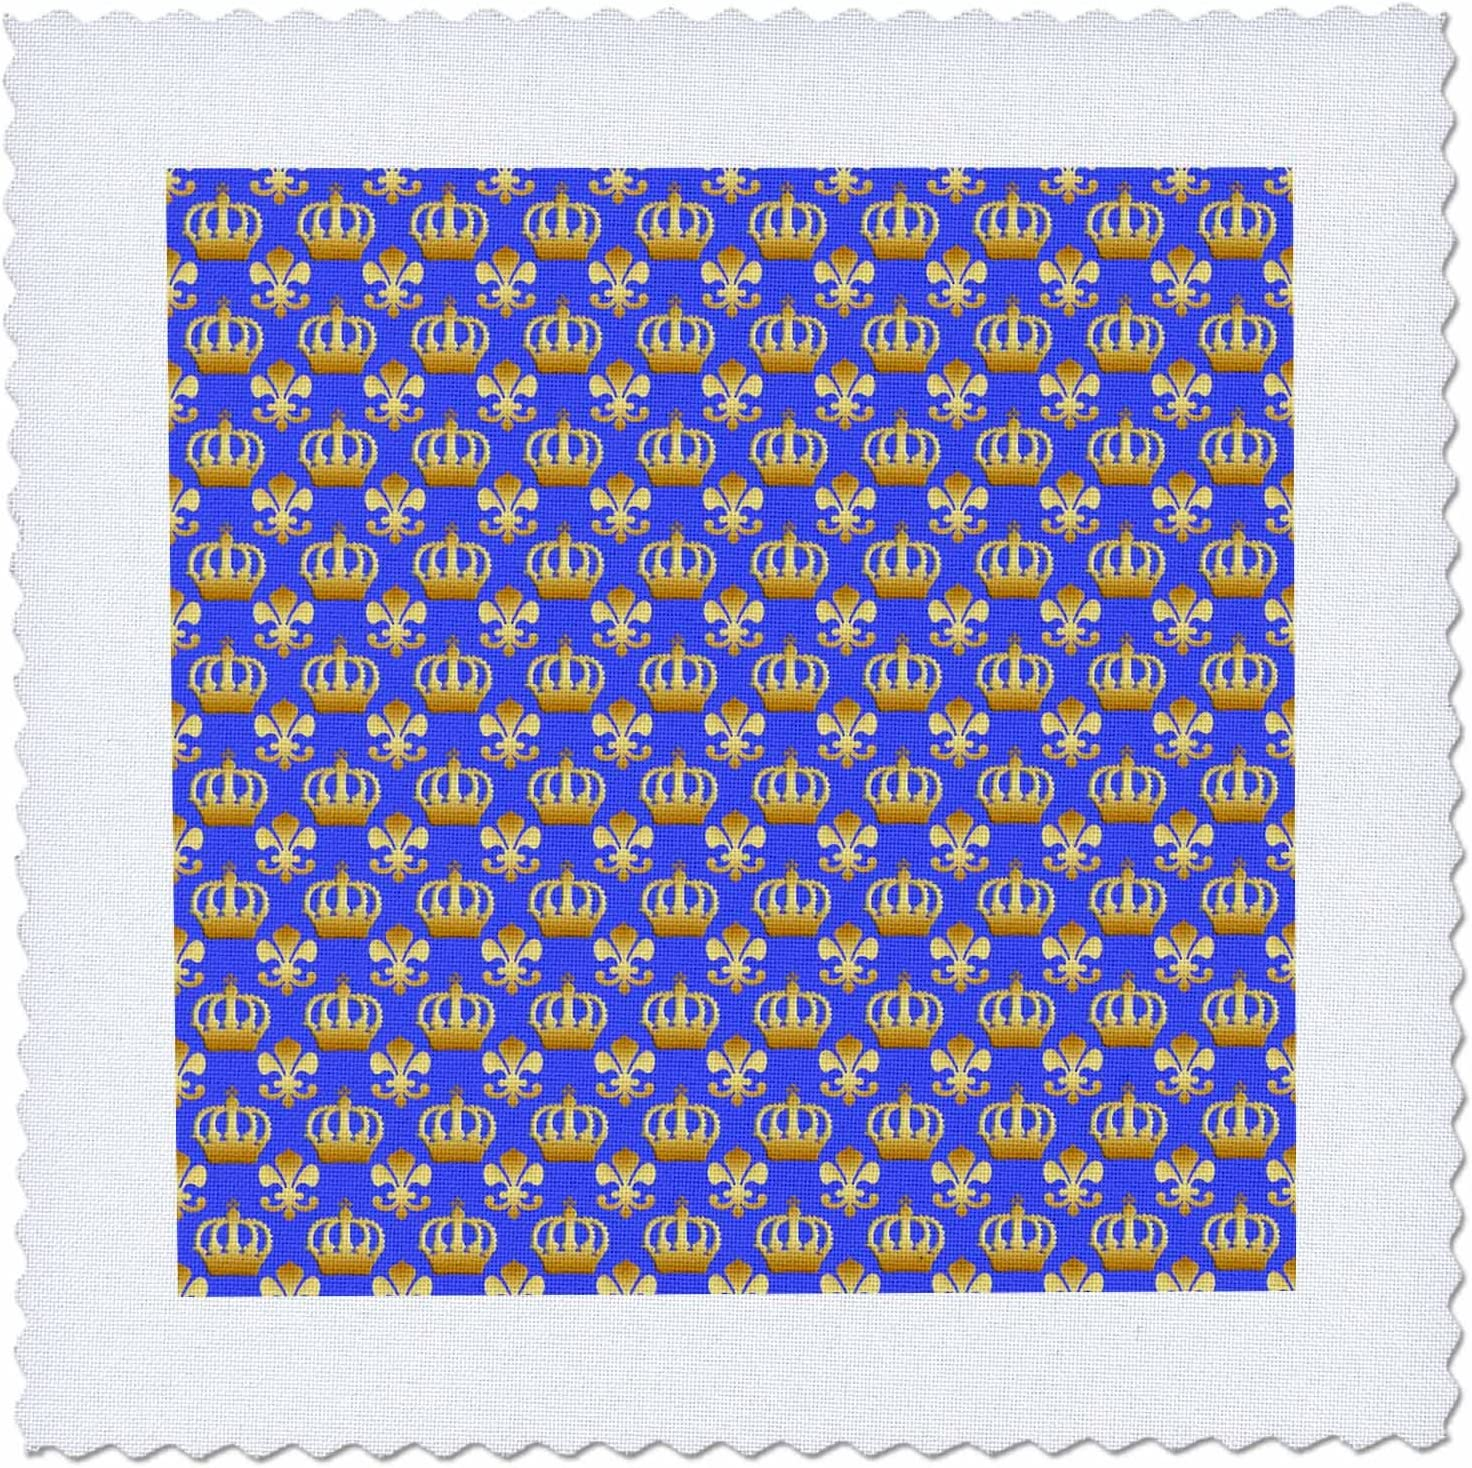 3dRose qs/_4144/_1 Fairytale Dragon Square Quilt Sheet 10 by 10-Inch